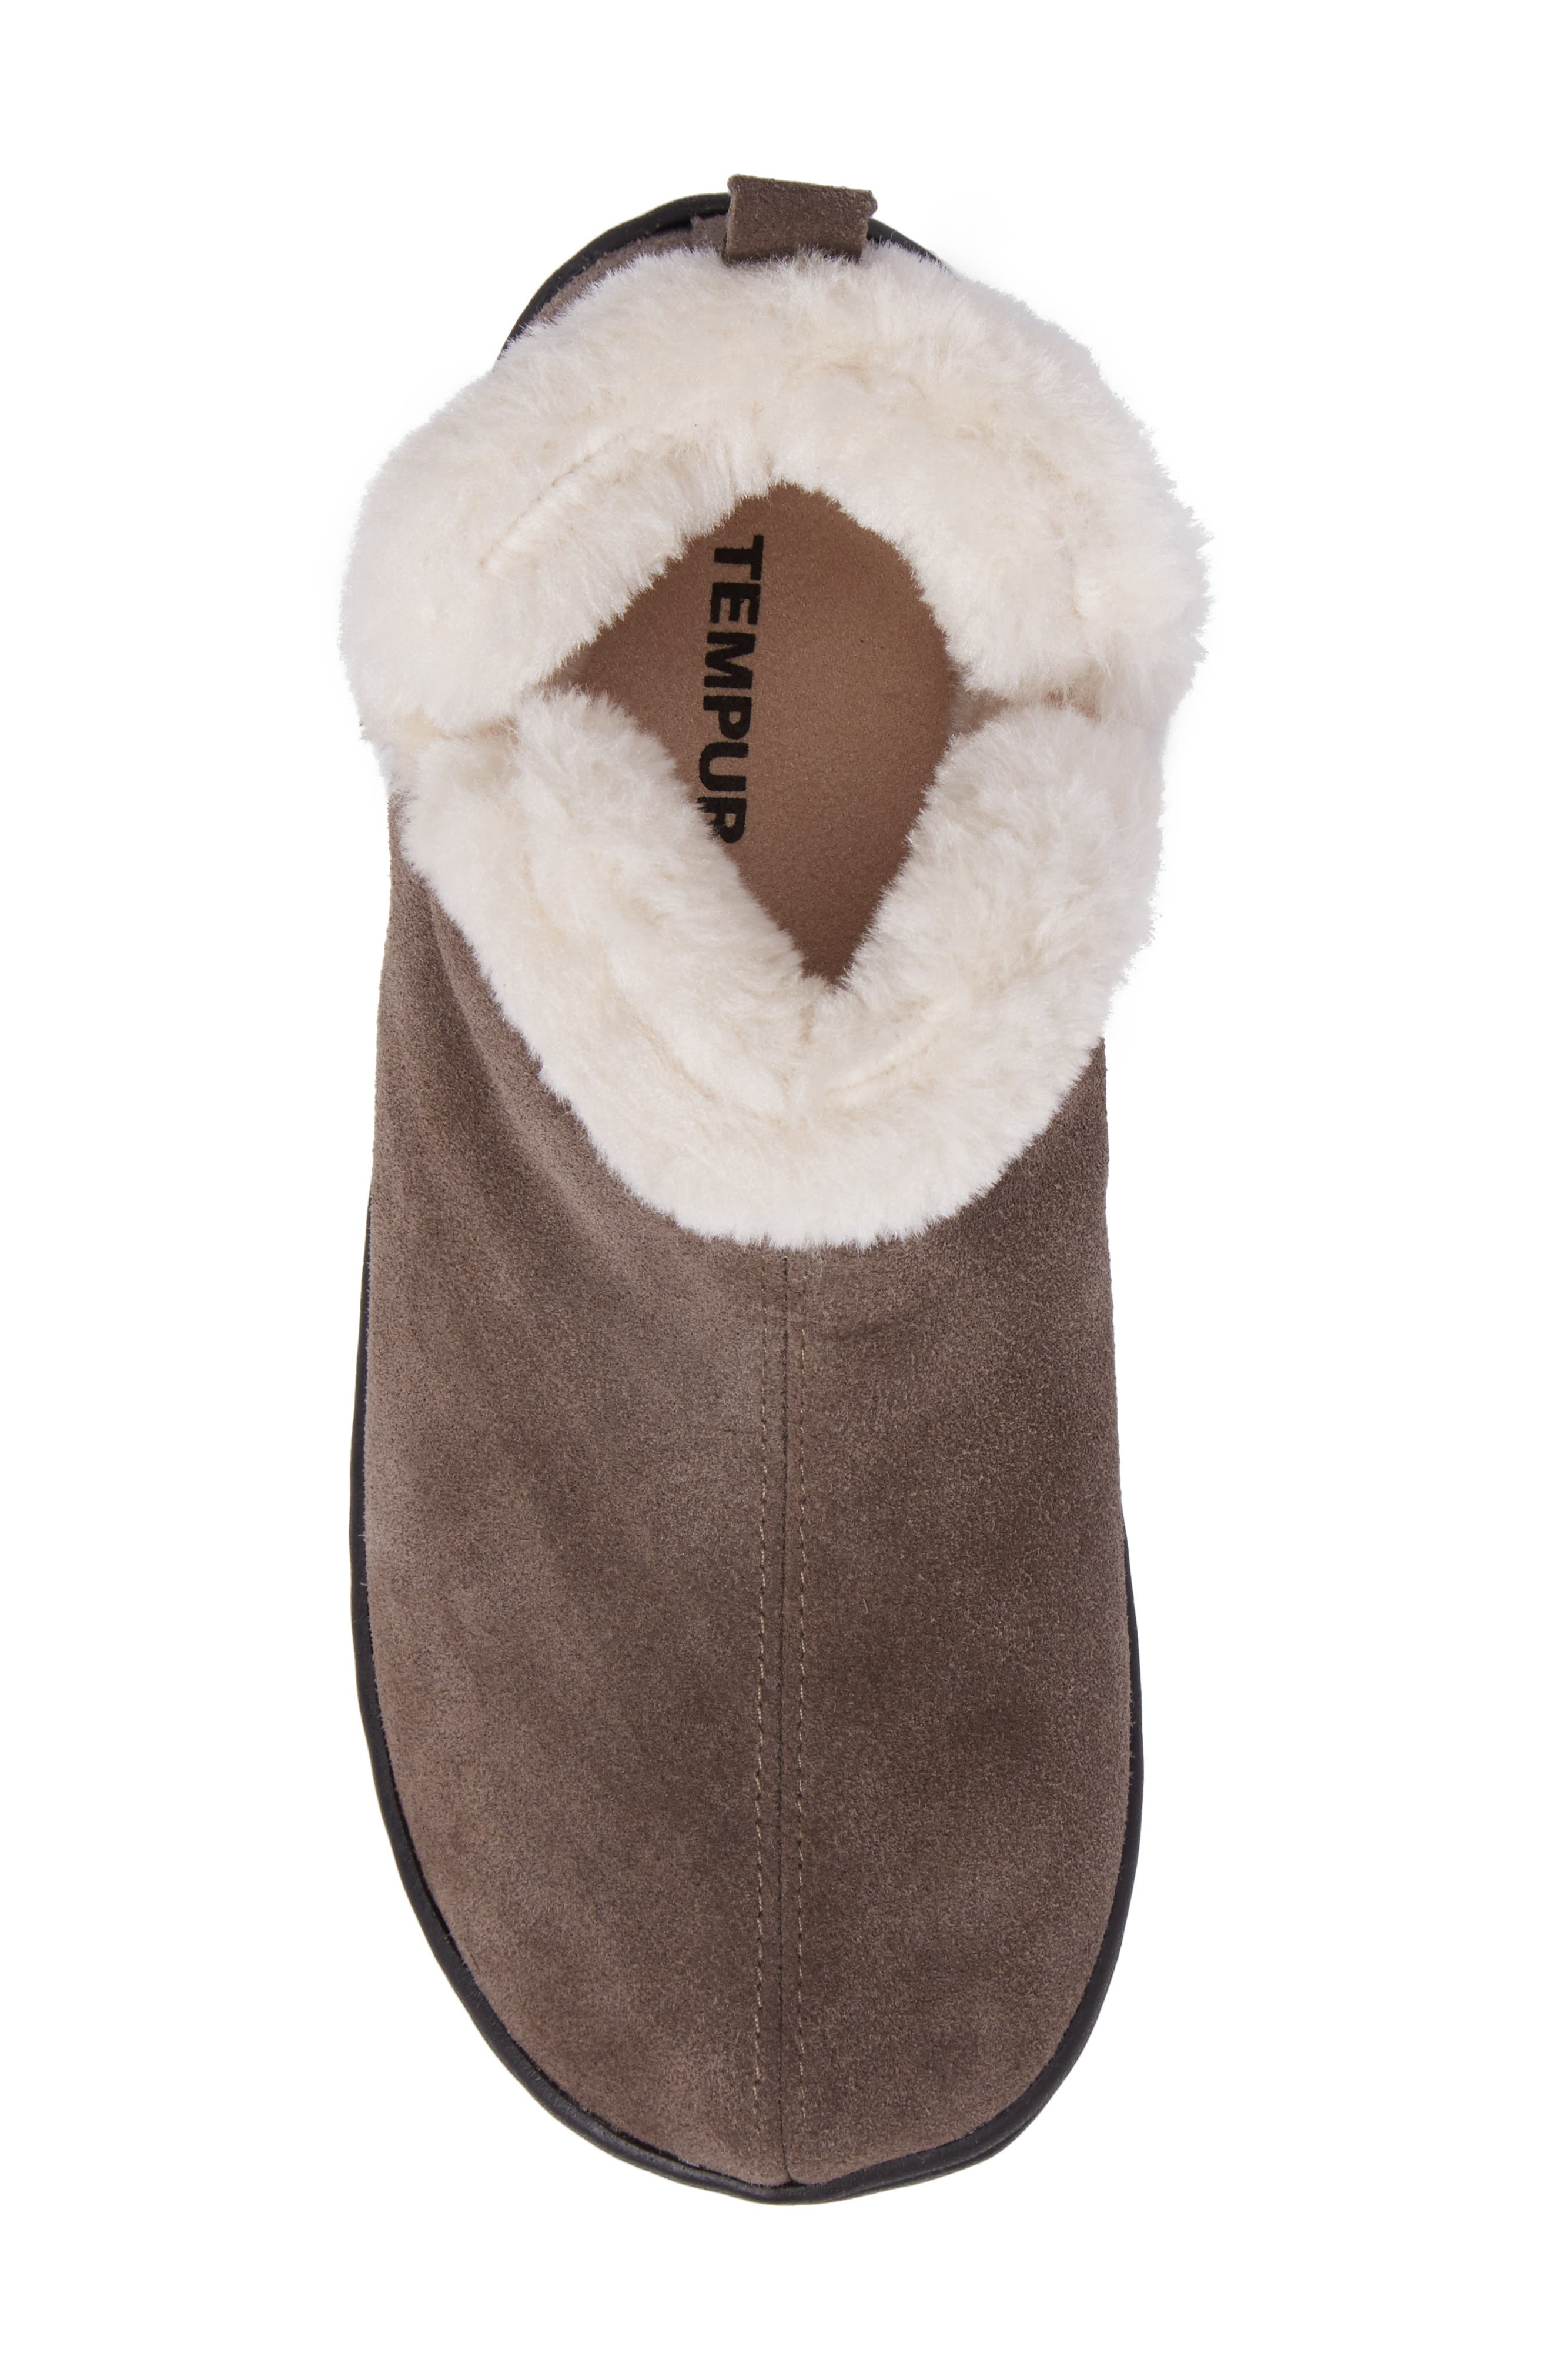 Vallery Bootie Slipper,                             Alternate thumbnail 5, color,                             GRAY SUEDE